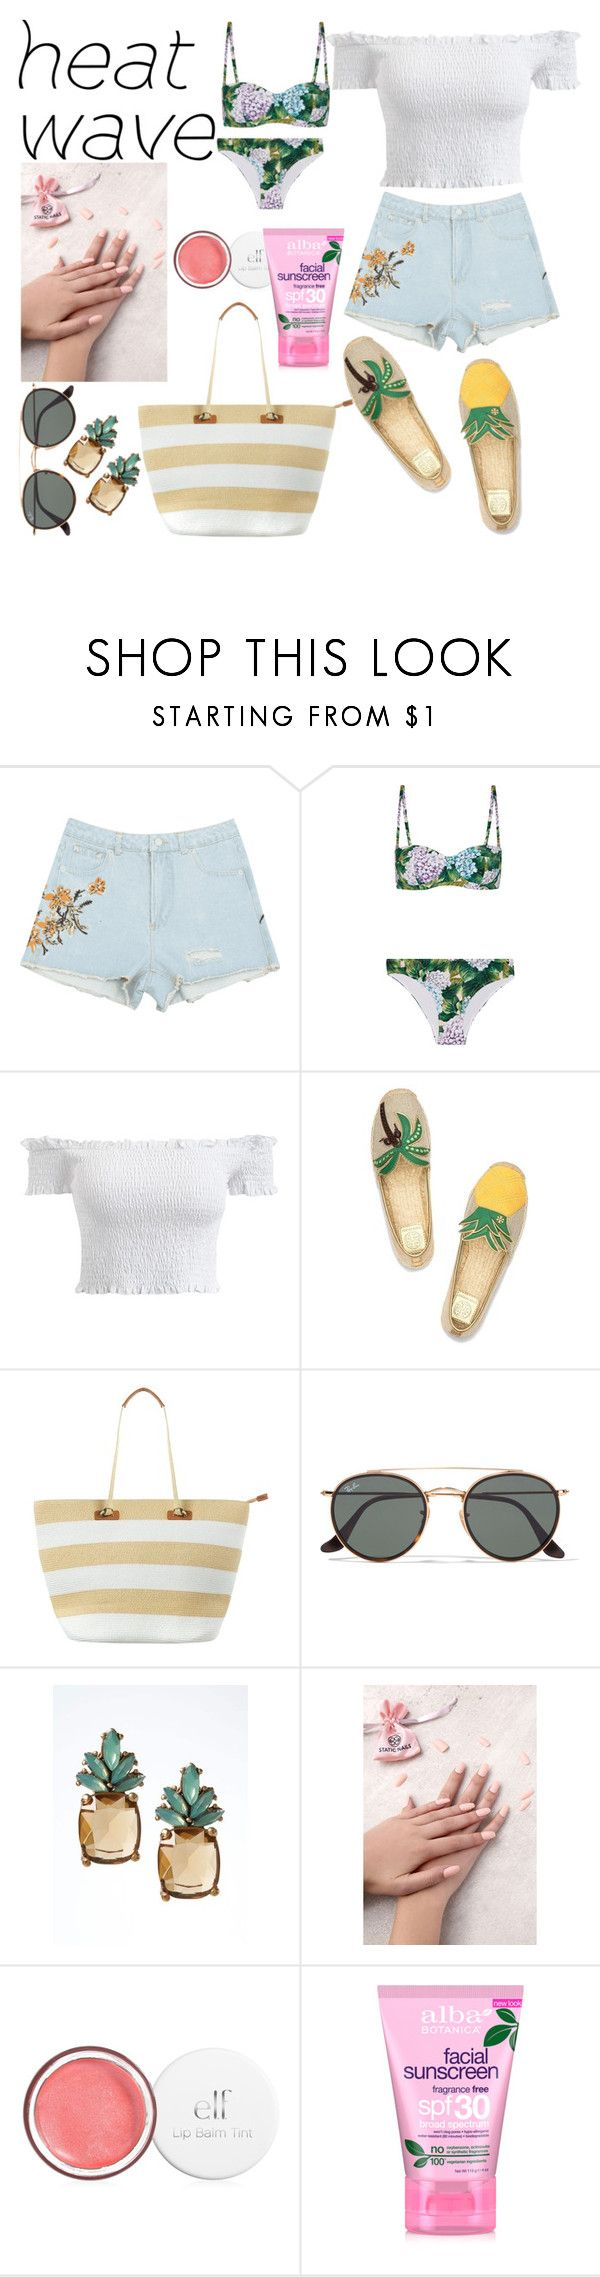 """HeatWave♡"" by annadeiman ❤ liked on Polyvore featuring Dolce&Gabbana, Tory Burch, Phase Eight, Ray-Ban, Banana Republic, Static Nails and Alba Botanica"